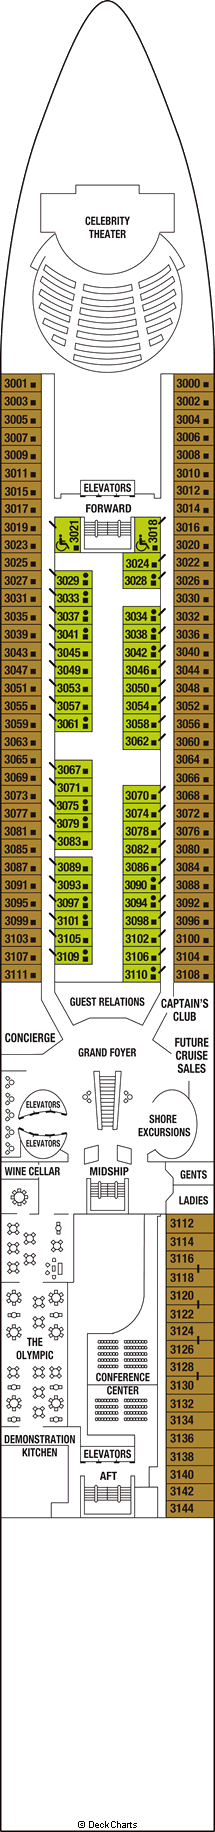 Deck Plans | Celebrity Millennium | The Luxury Cruise Company